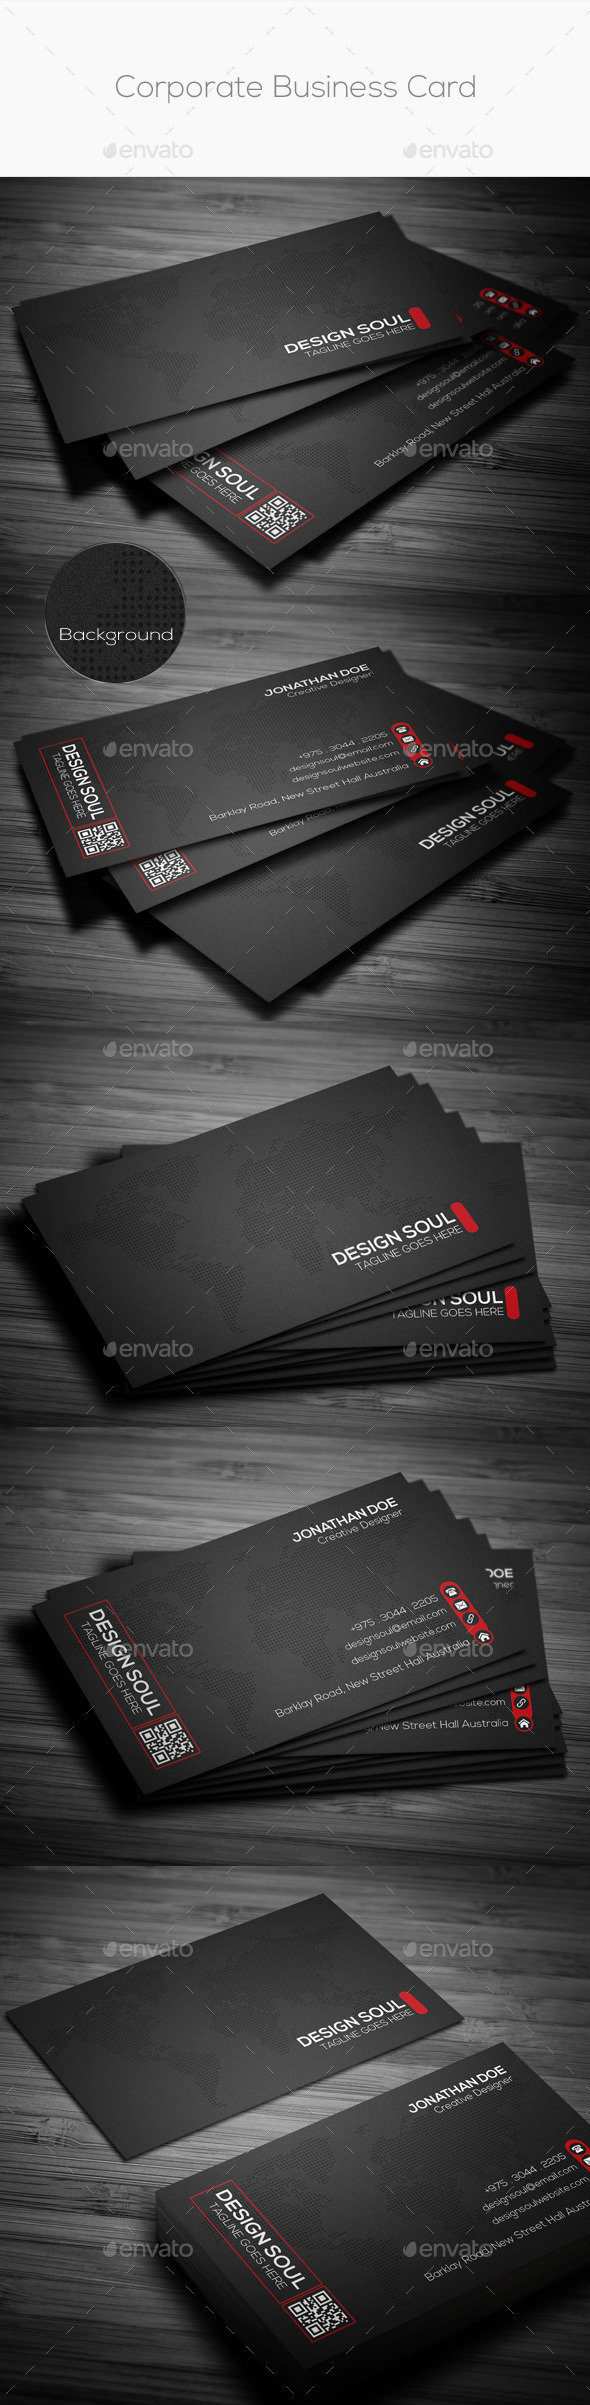 GraphicRiver Corporate Business Card 8825437